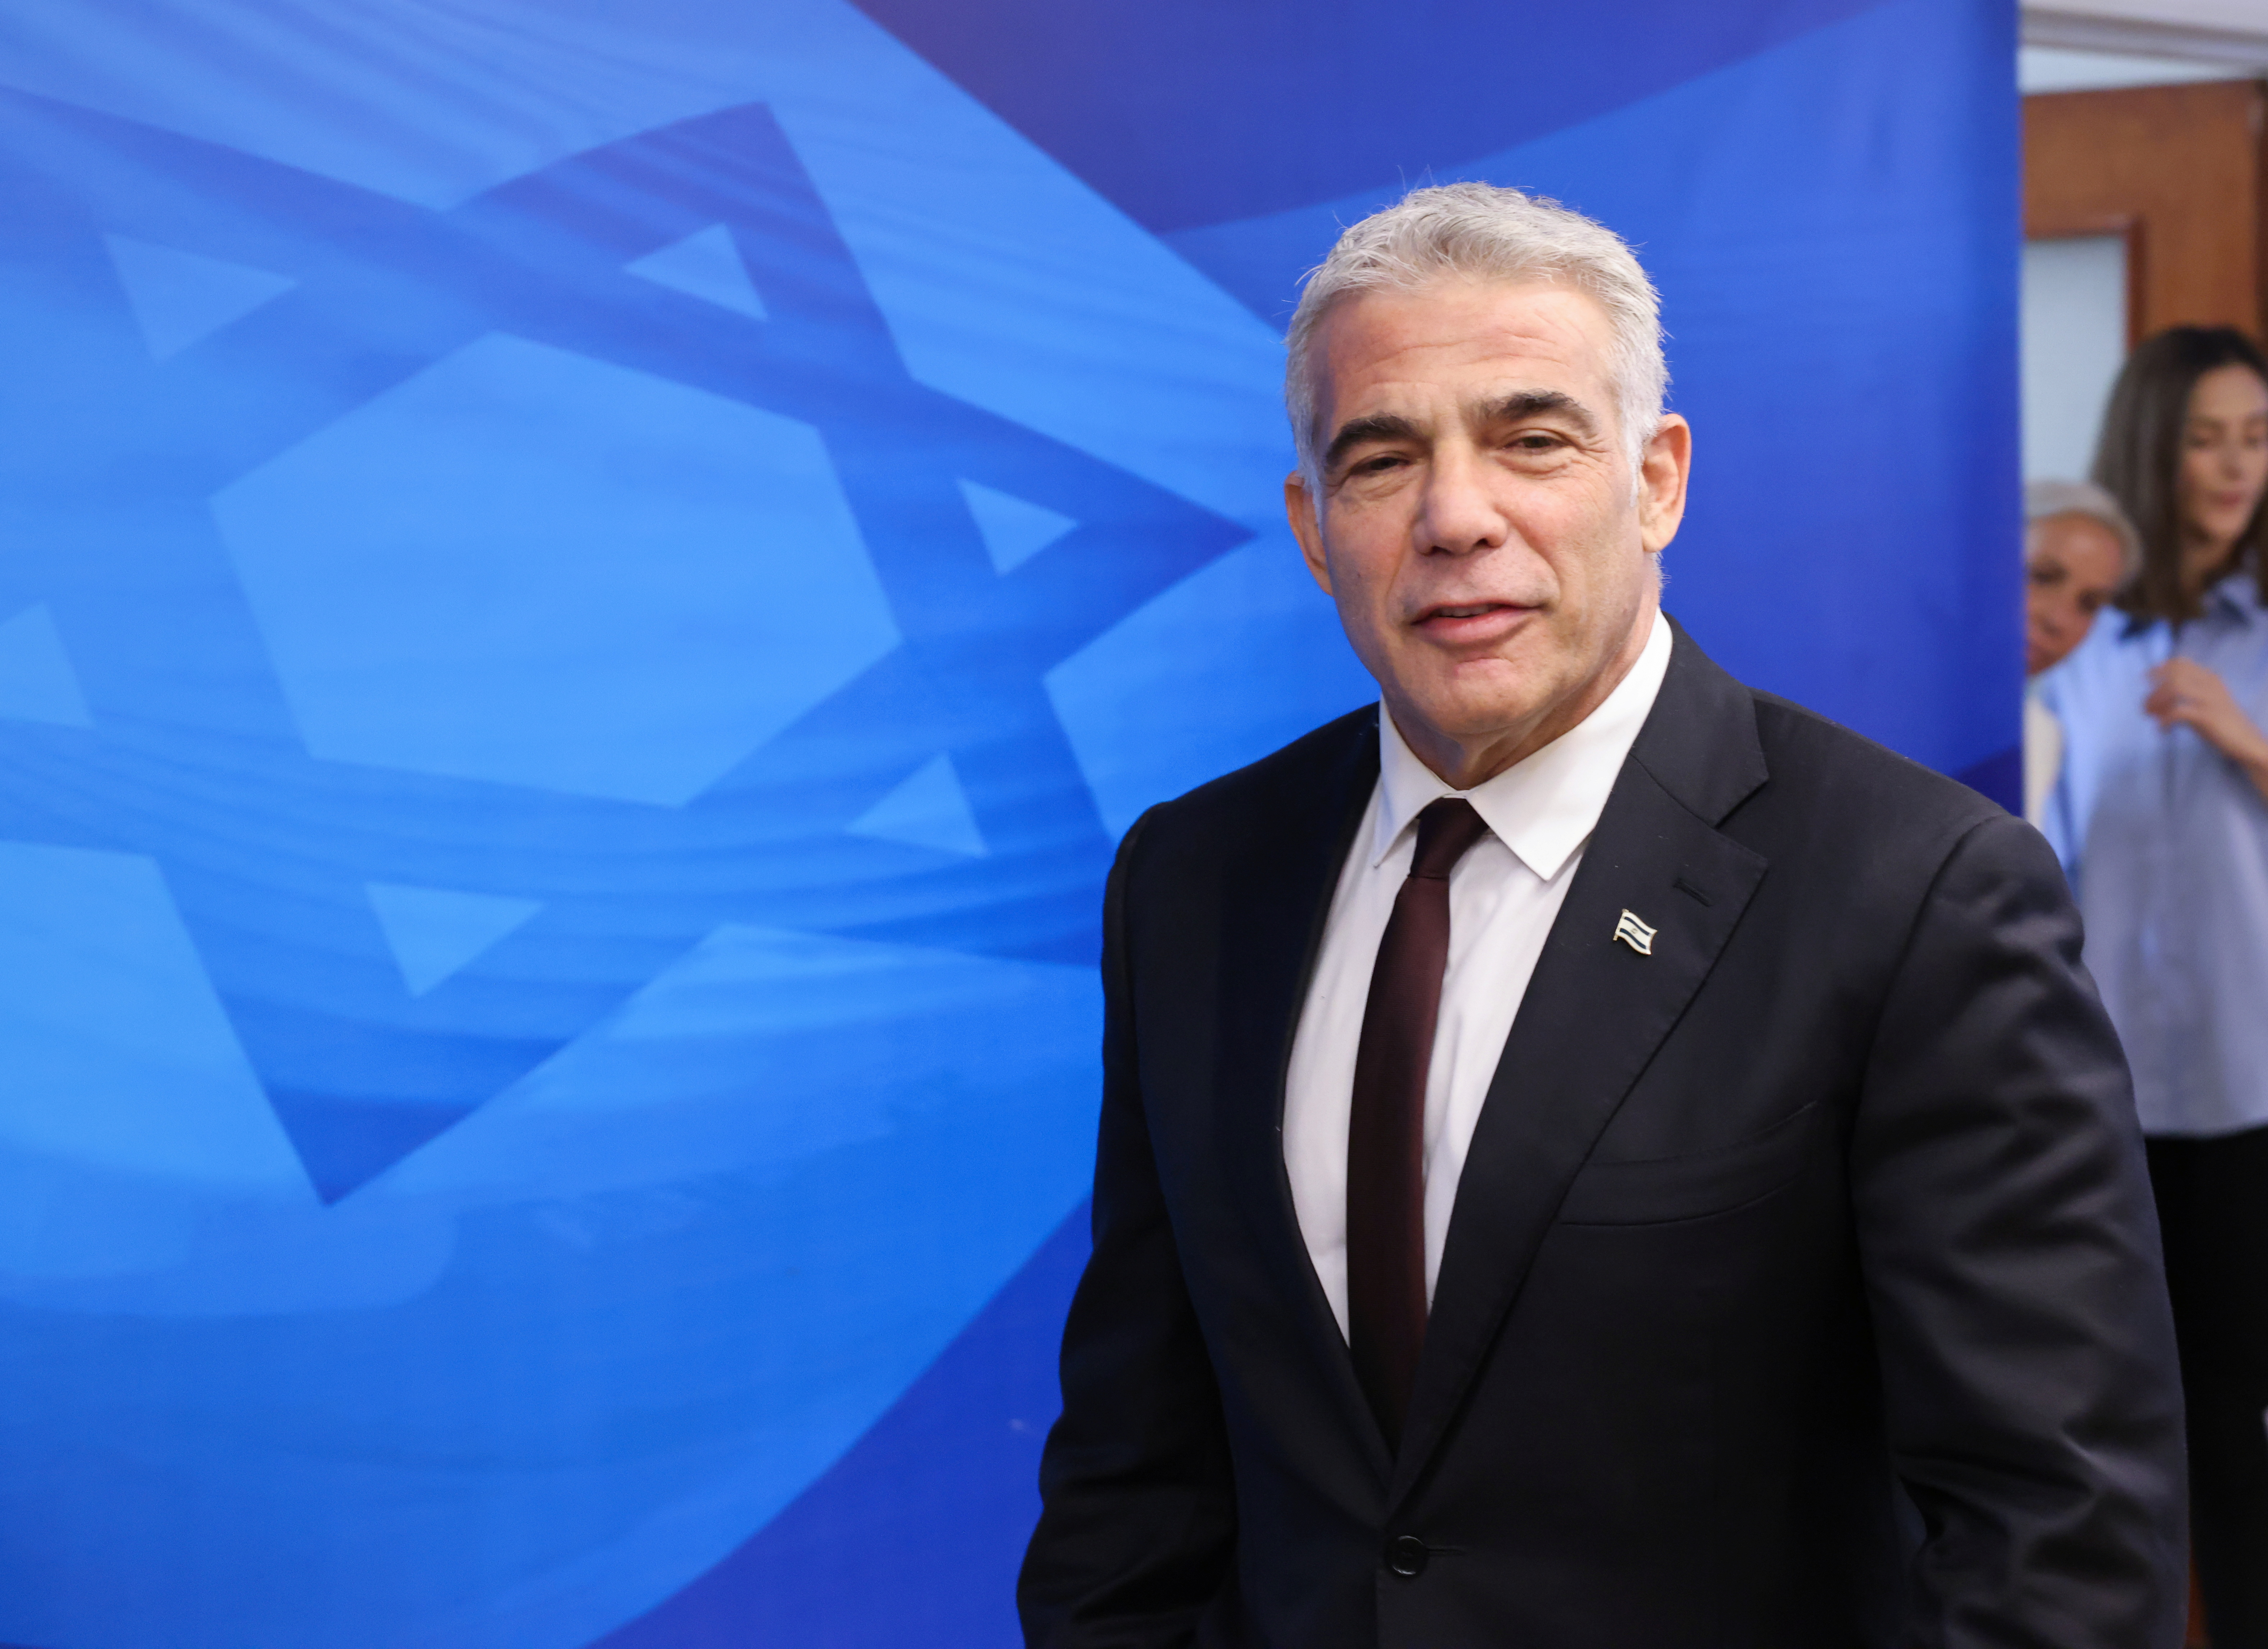 Israeli alternate Prime Minister and Foreign Minister Yair Lapid arrives to attend the first weekly cabinet meeting of the new government in Jerusalem June 20, 2021. Emmanuel Dunand/Pool via REUTERS